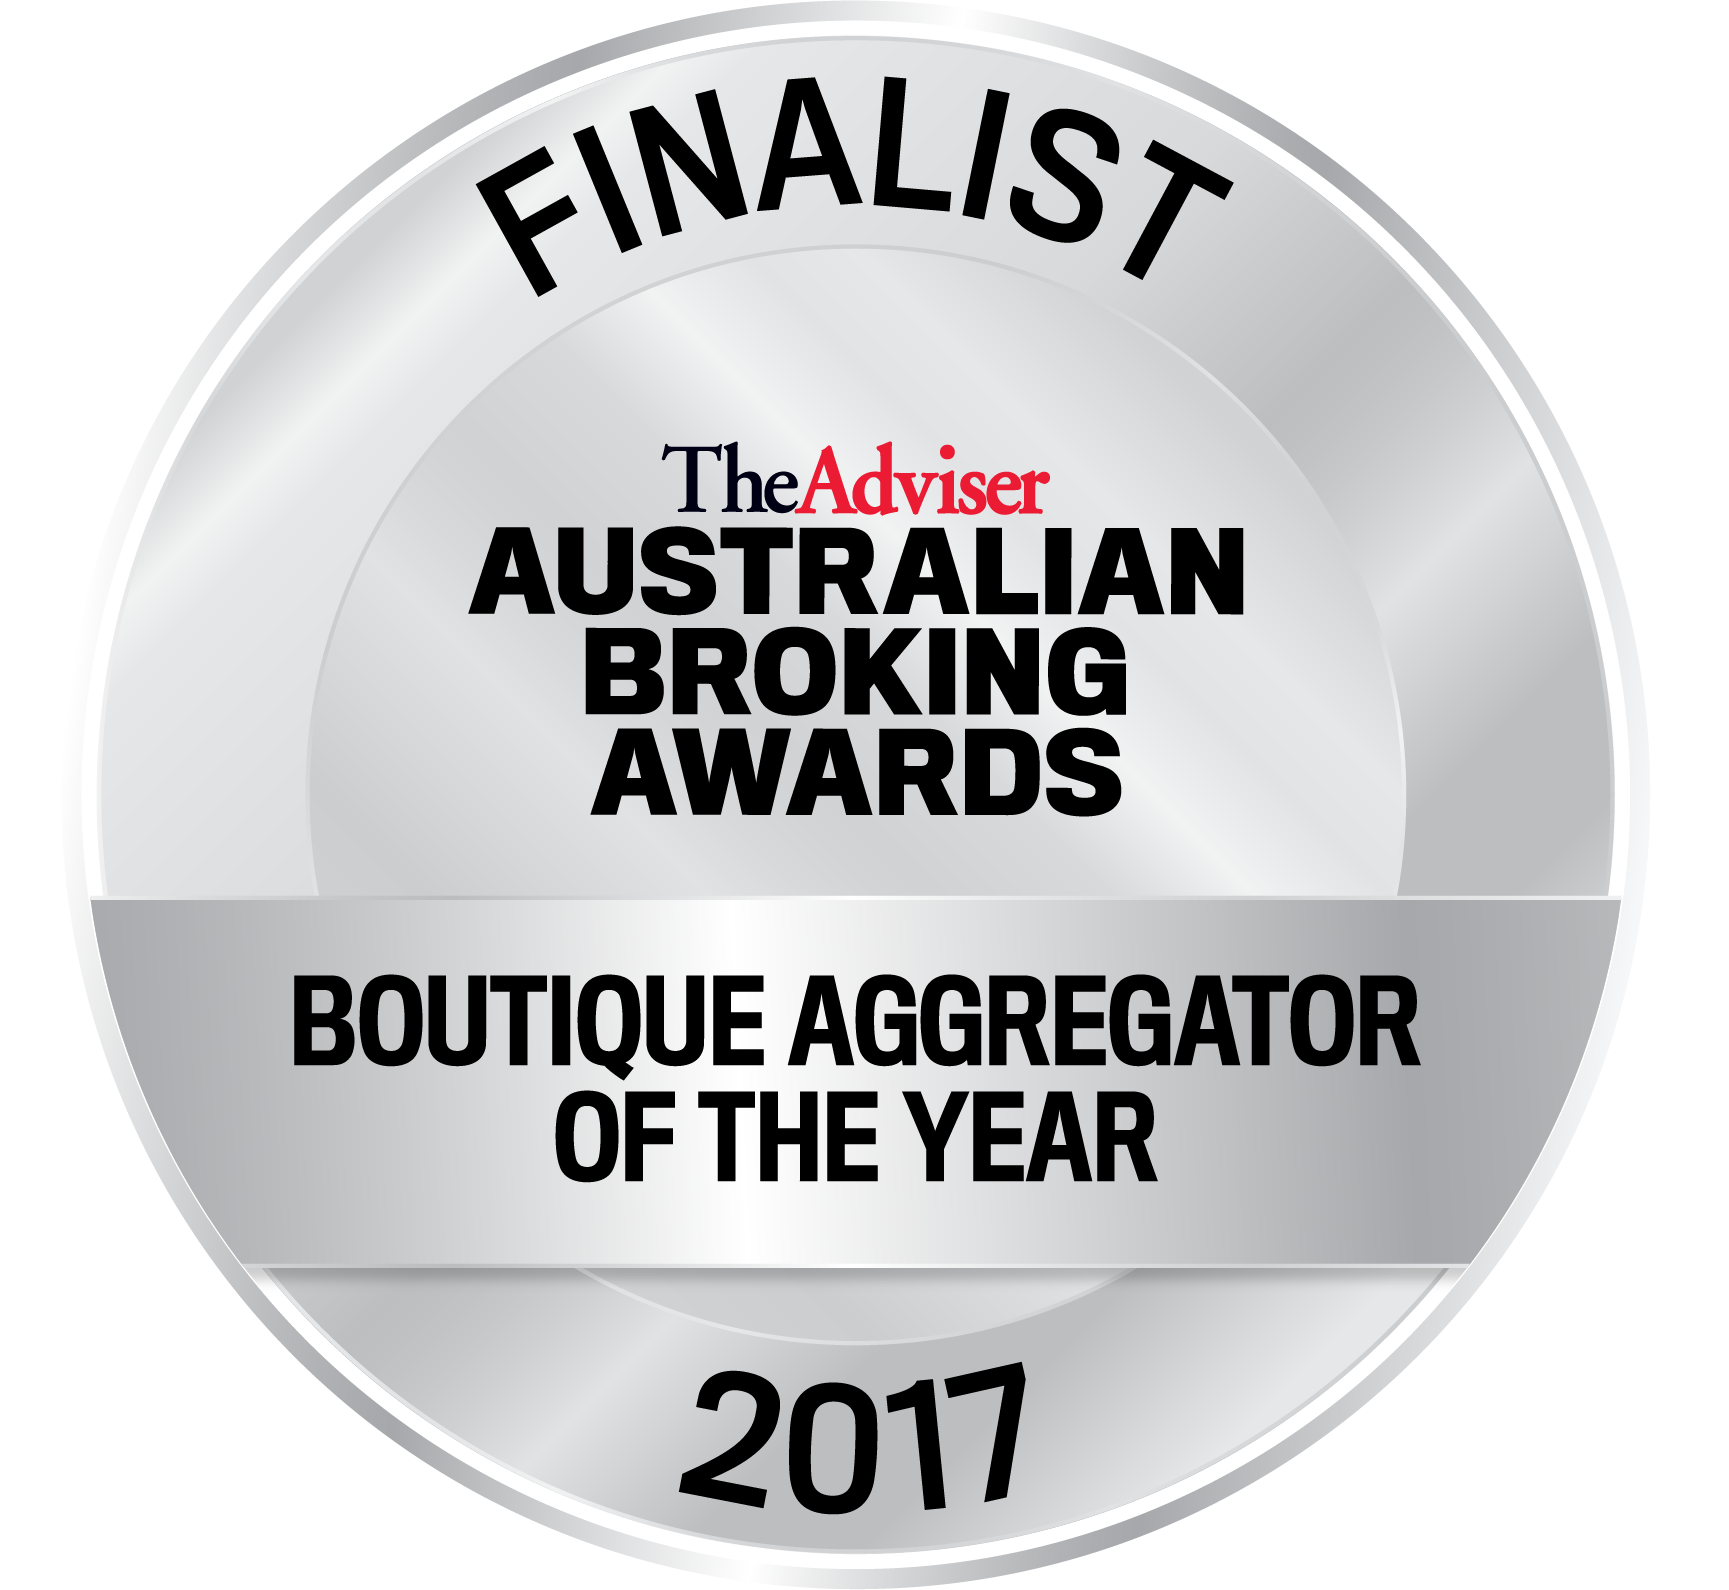 2017 Finalist Boutique Aggregator of the Year